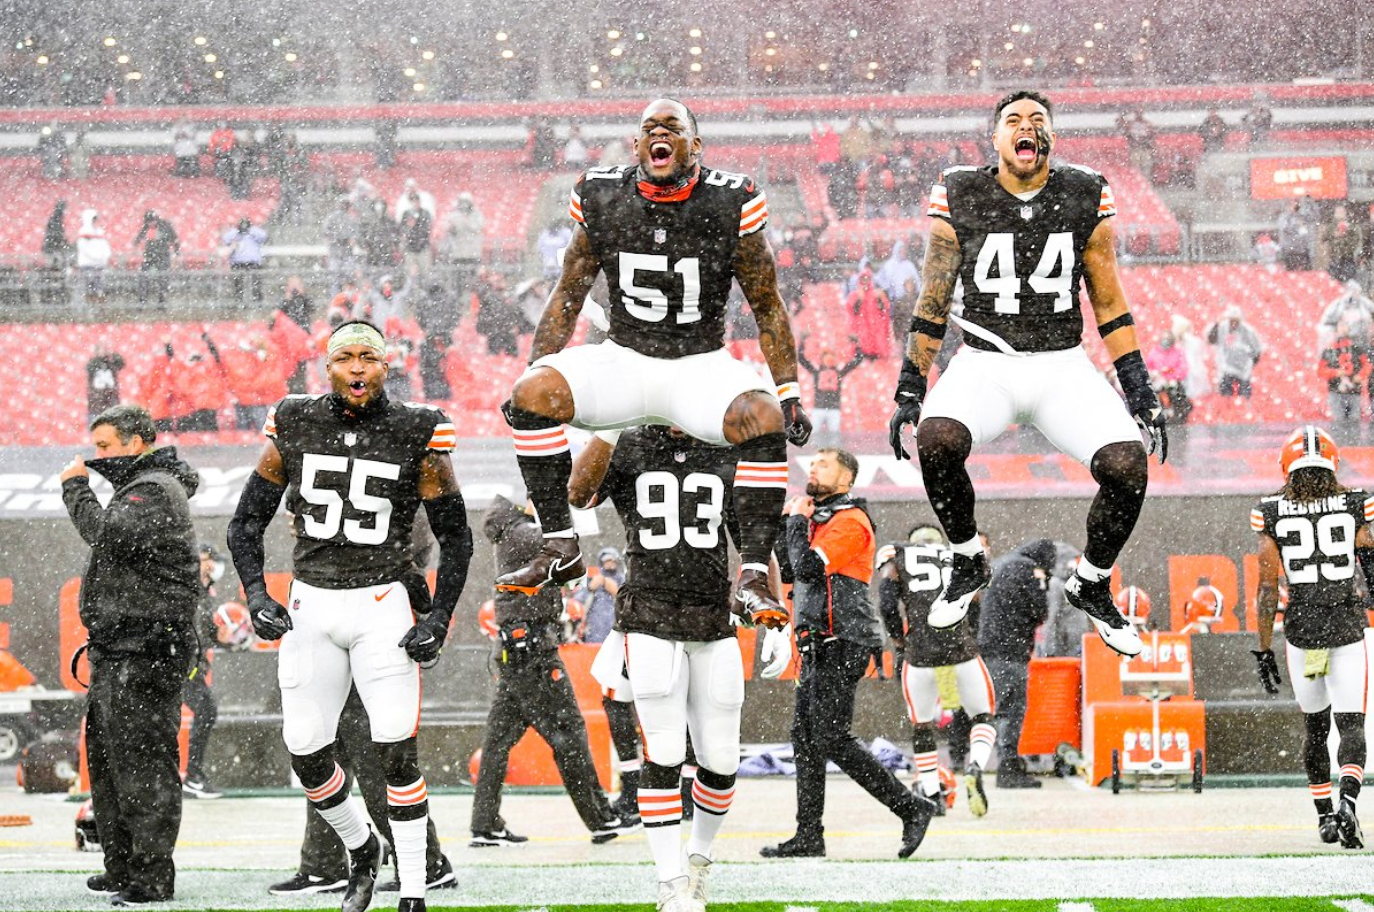 sshot2020-11-19 15_29_06-2020-11-19 15_26_16-Cleveland Browns on Twitter_ _The pre-game weather was wild